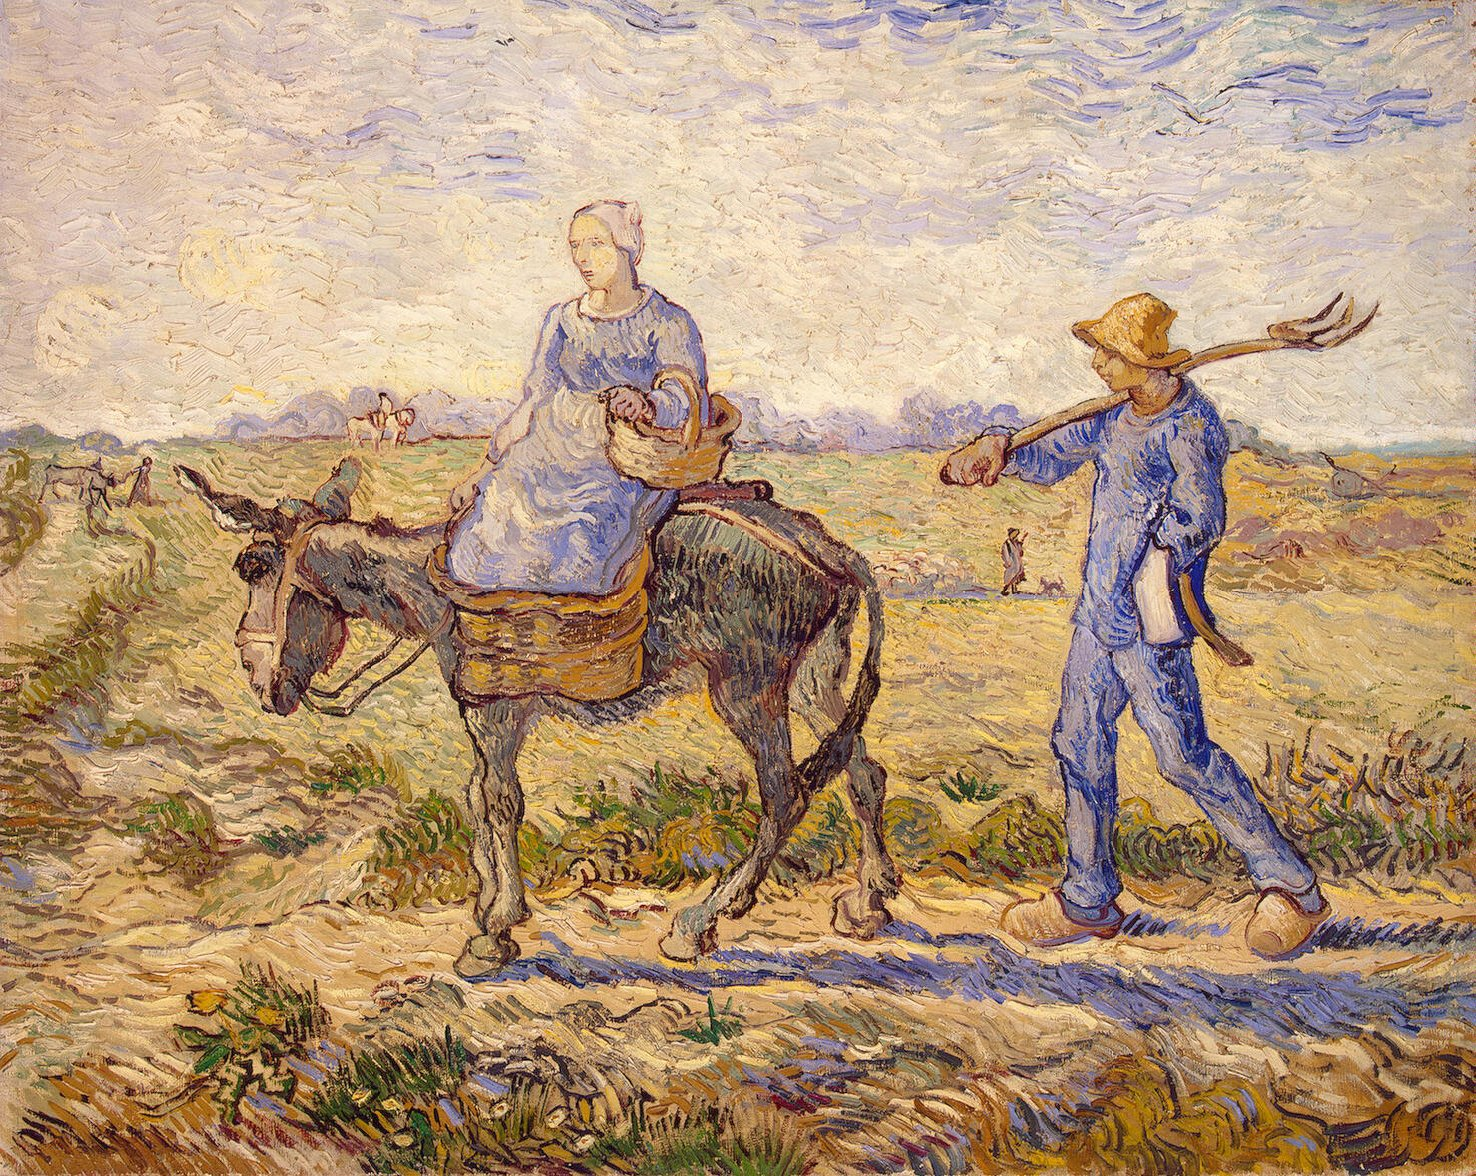 Vincent van Gogh  - Morning, Going to Work, 1890 https://t.co/c0LY0D6RmR